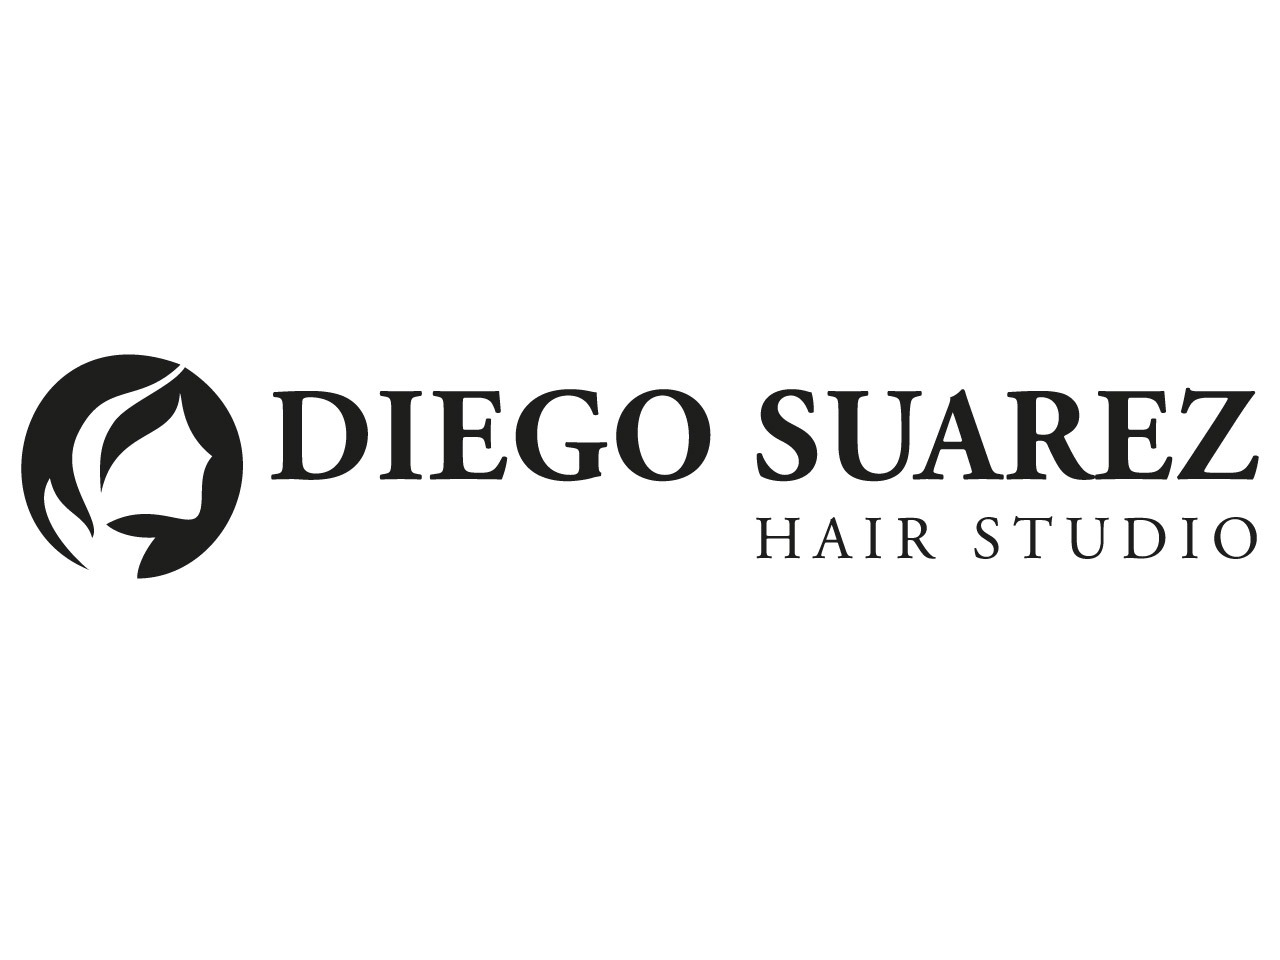 Diego Suarez Hair Studio